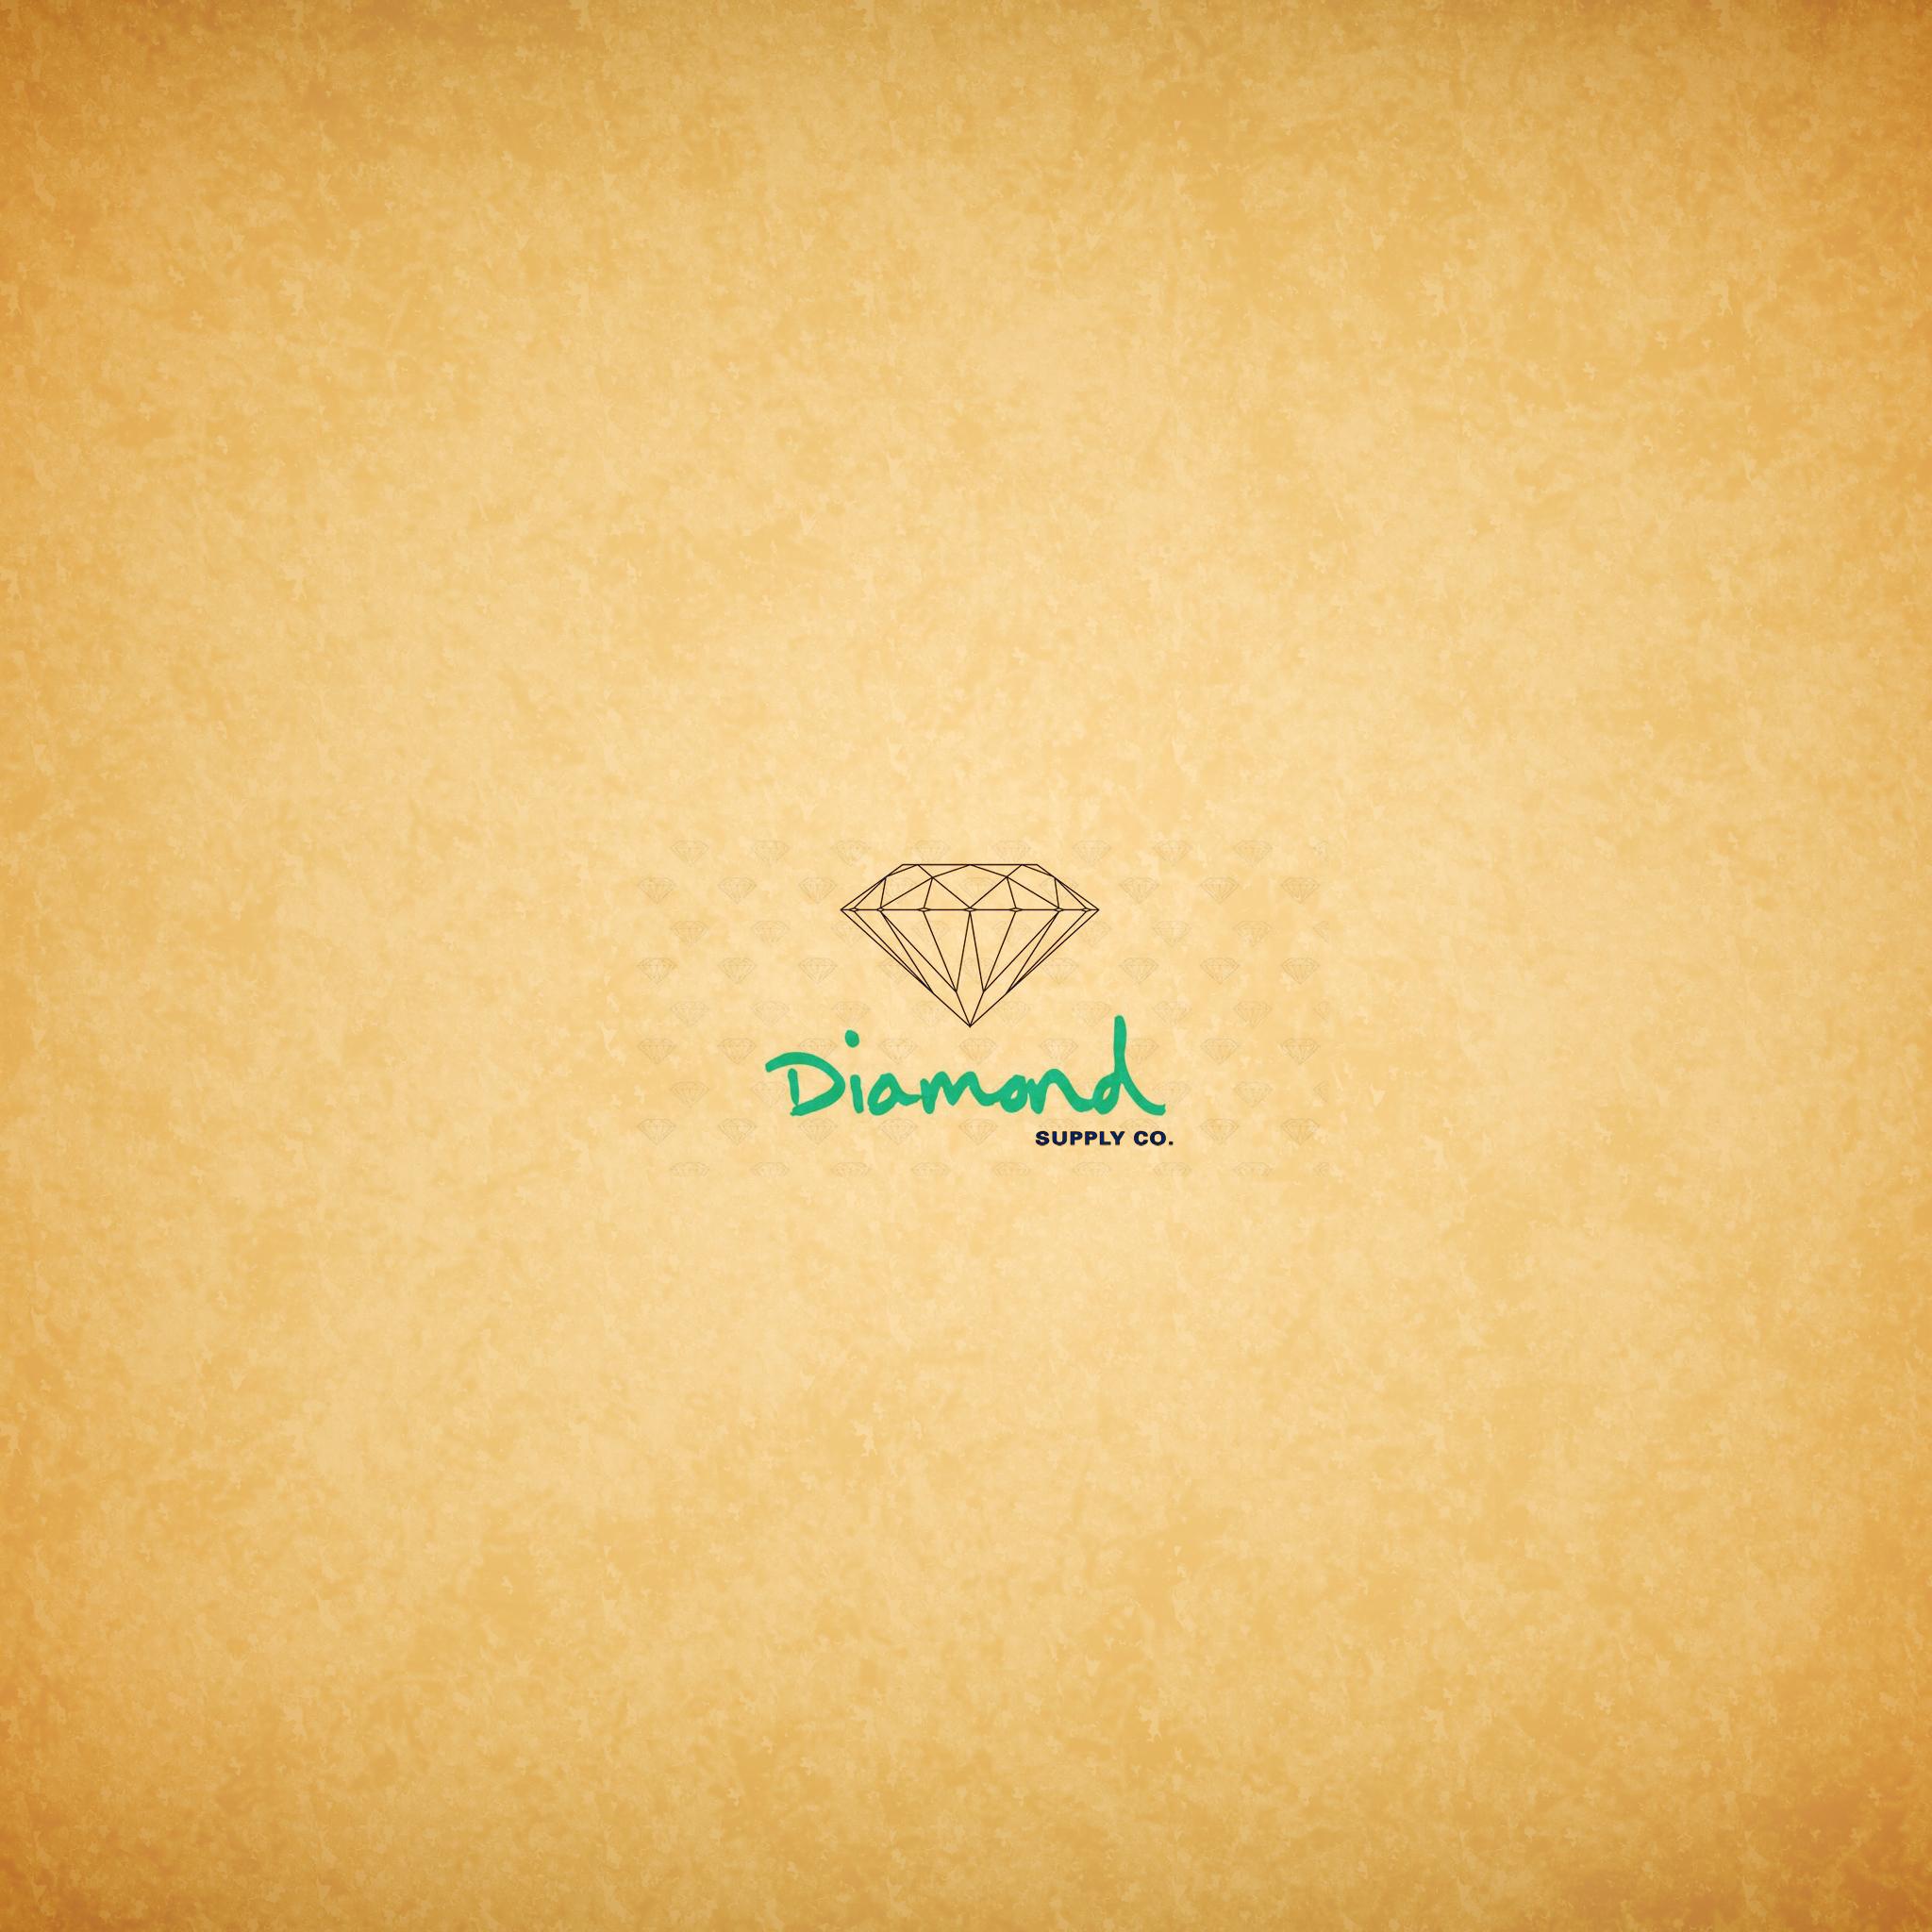 Diamond Supply Co 3Wallpapers iPad Diamond Supply Co   iPad